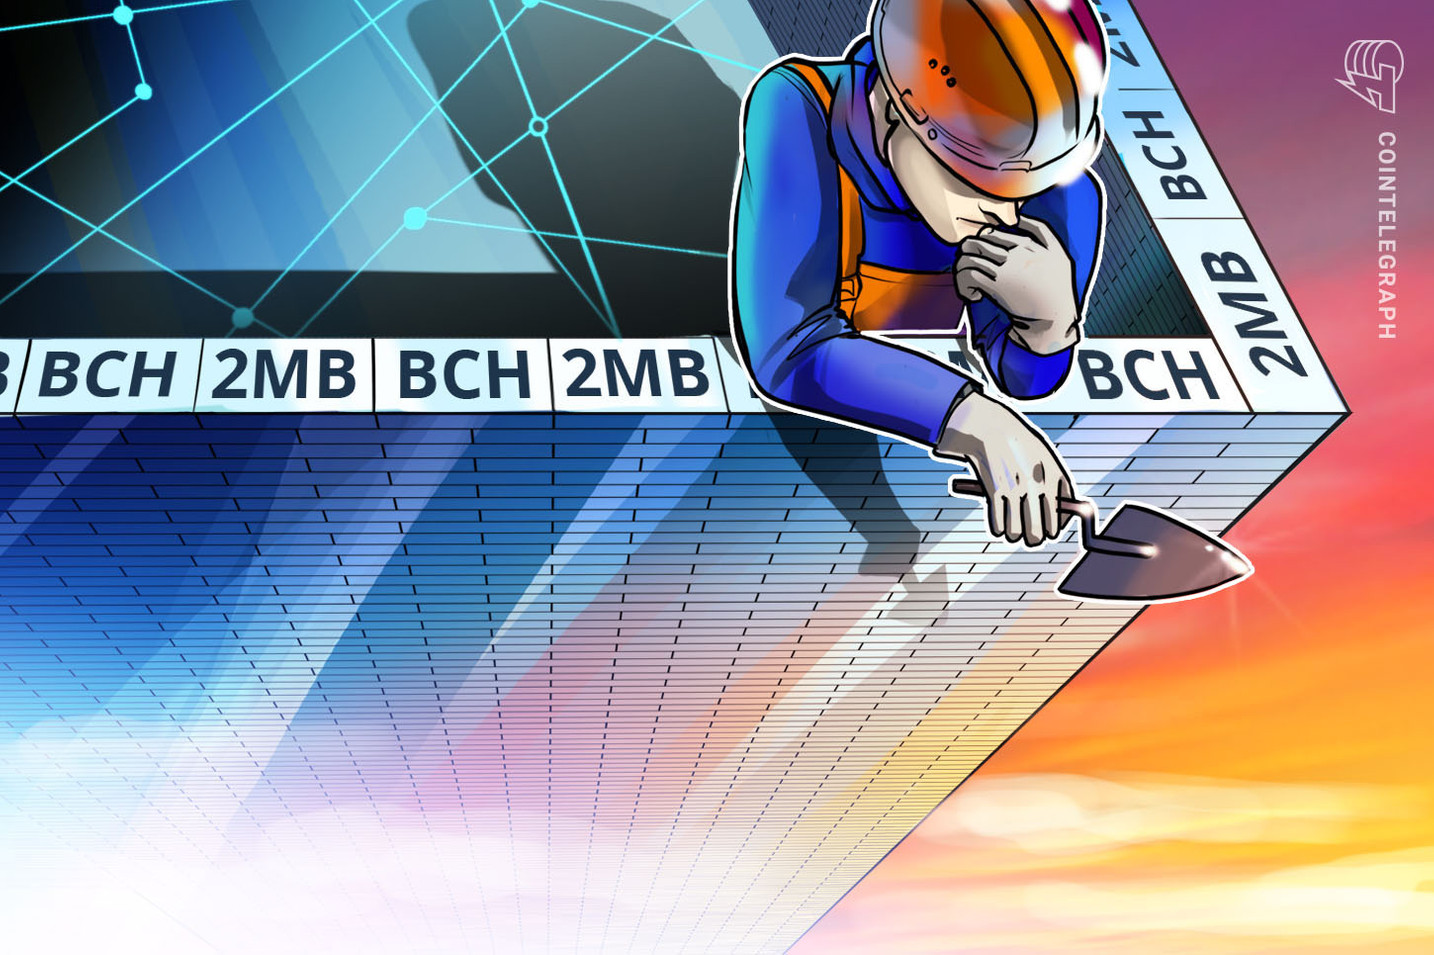 Bitcoin Cash Can't Mine Blocks Bigger Than 2MB, Lead Dev Suggests